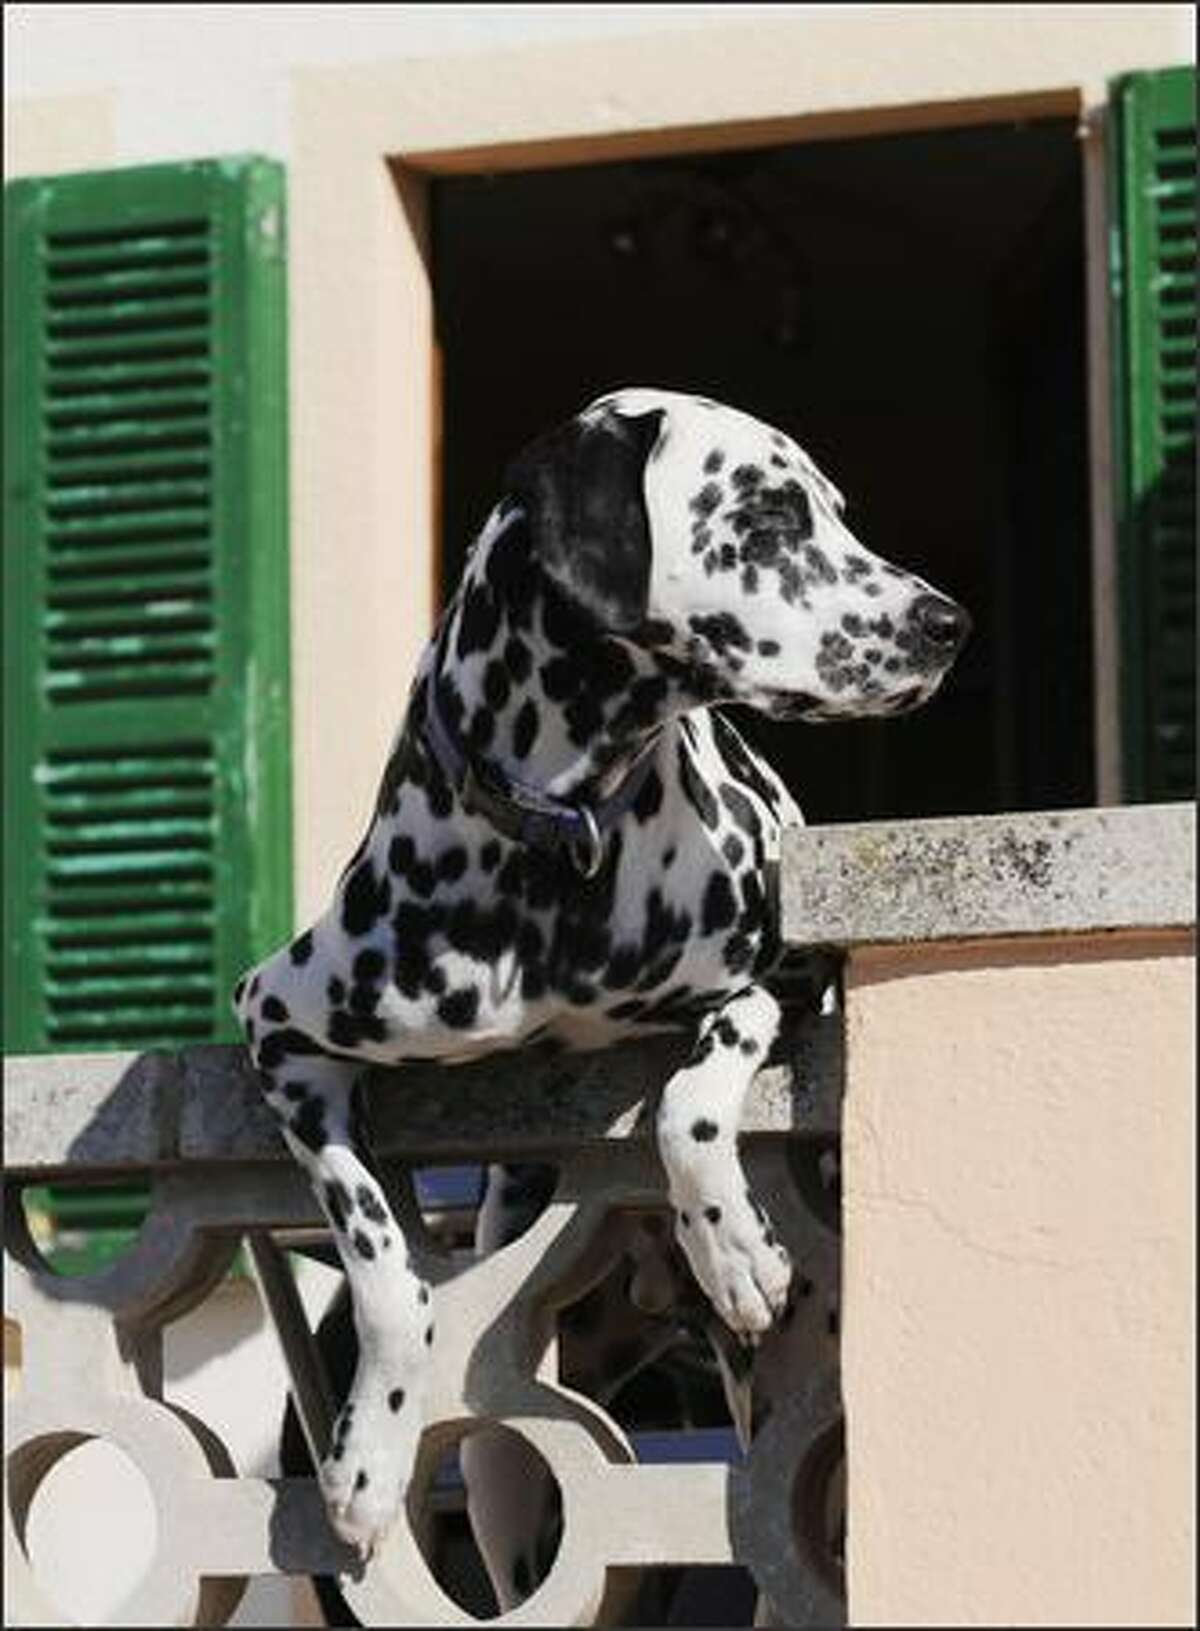 A Dalmatian dog leans over a balcony in the harbour of Port d'Andratx on the Balearic island of Majorca.